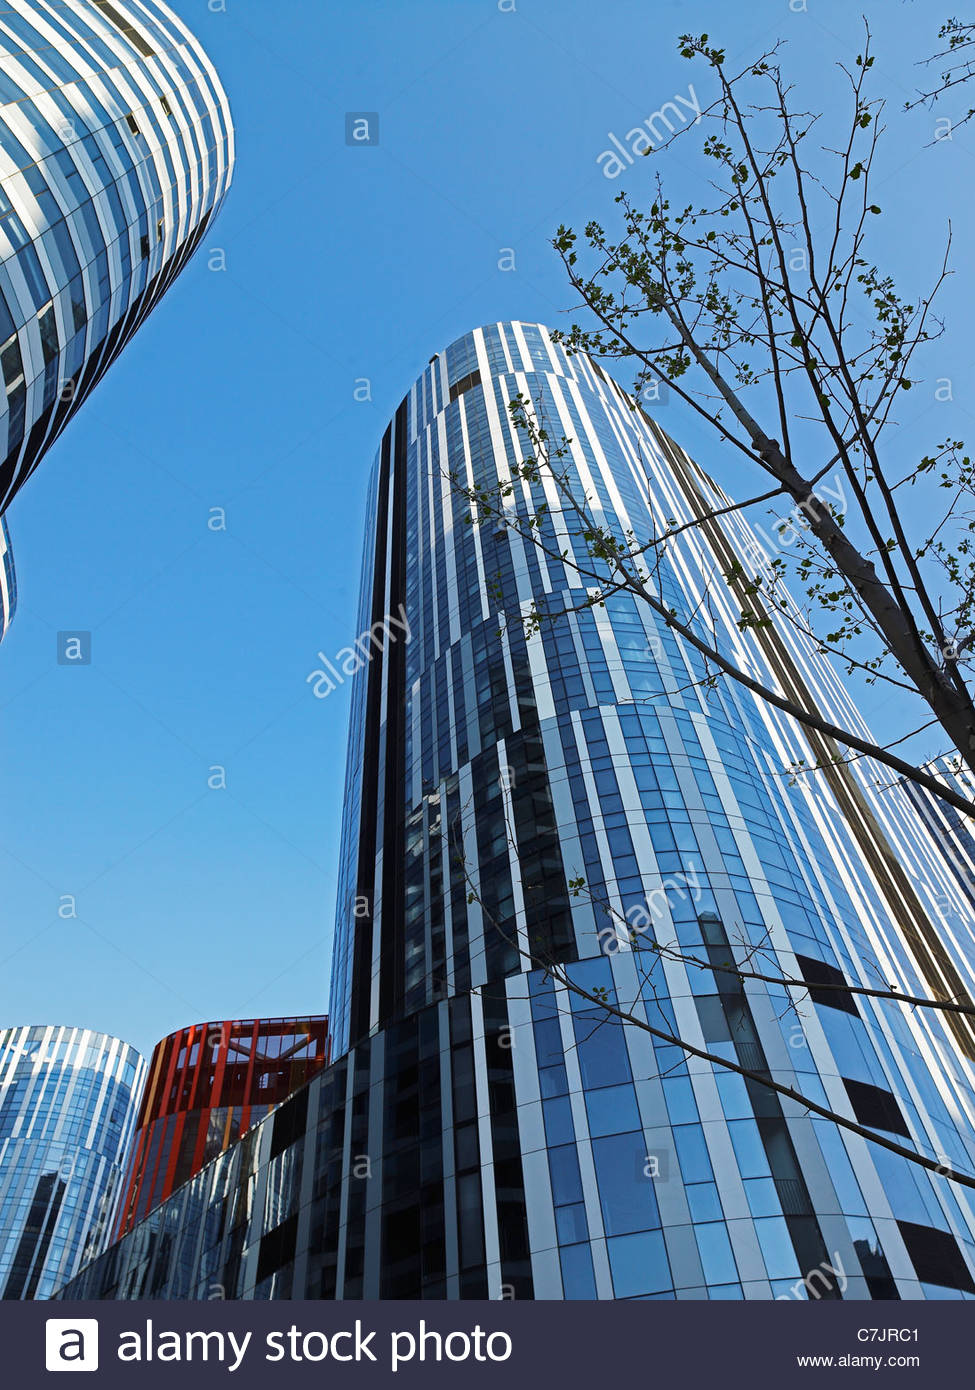 Modern skyscrapers against blue sky - Stock Image